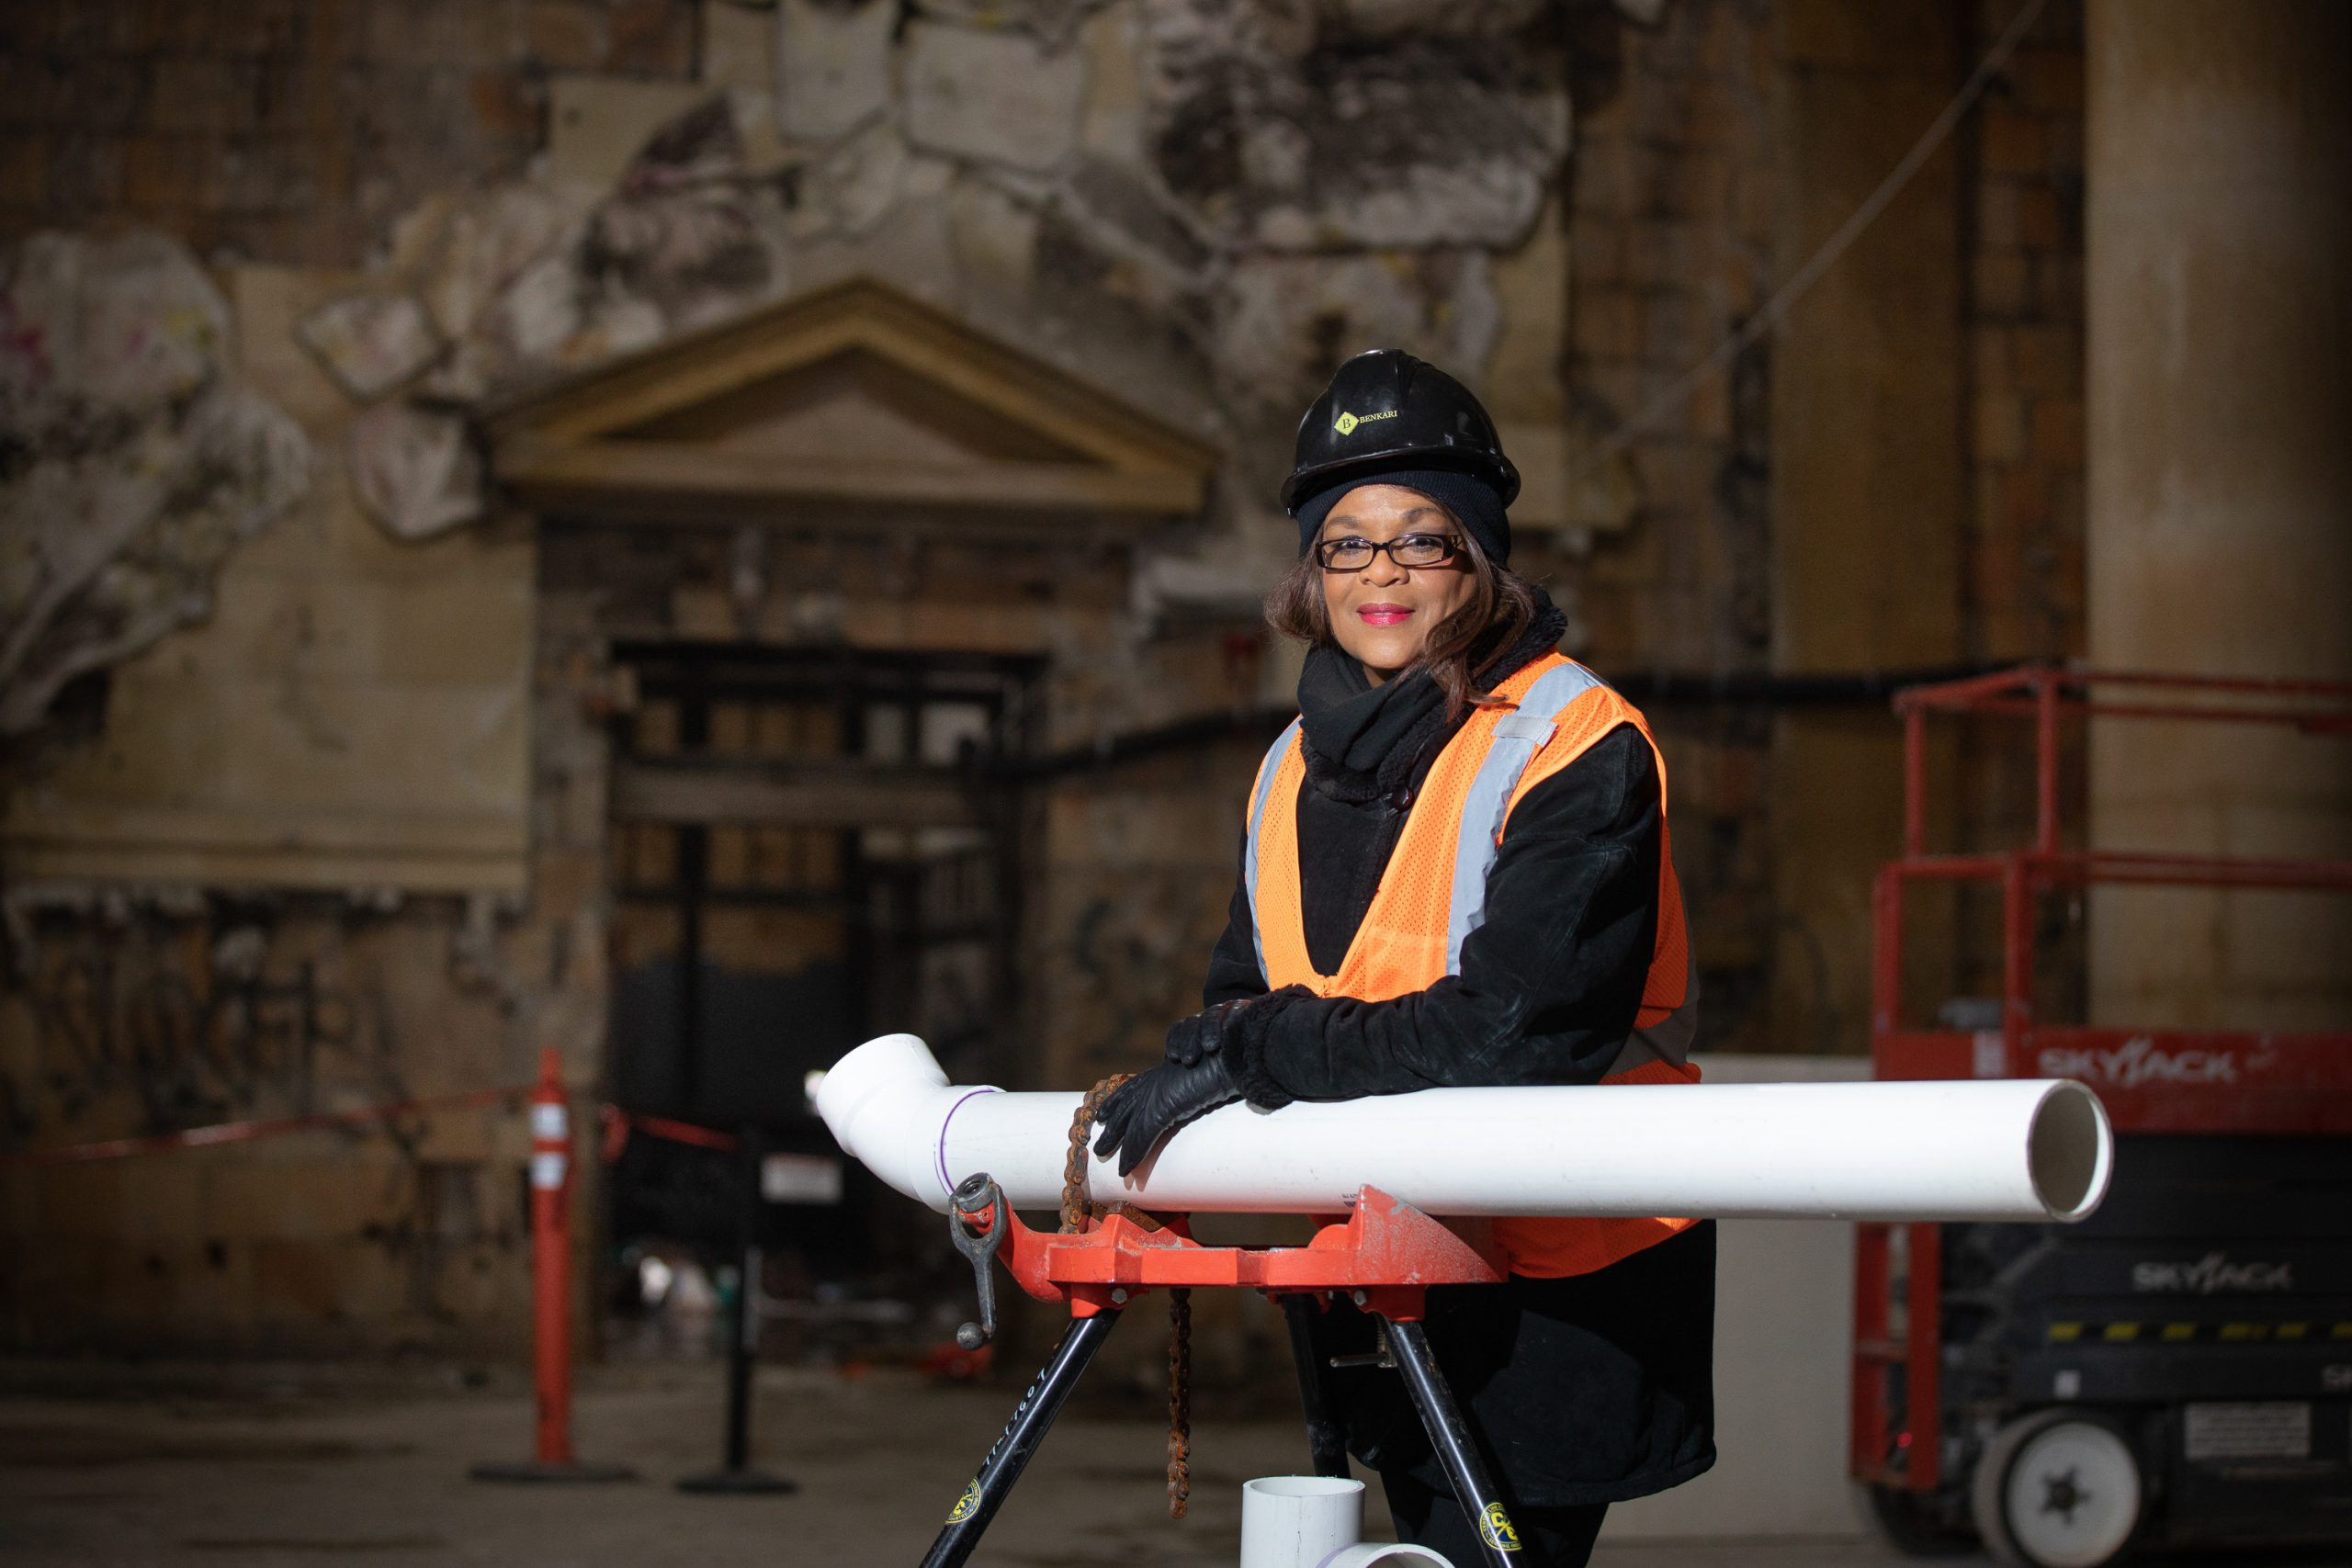 Adrienne Bennett the first female licensed master plumber and plumbing contractor in North America